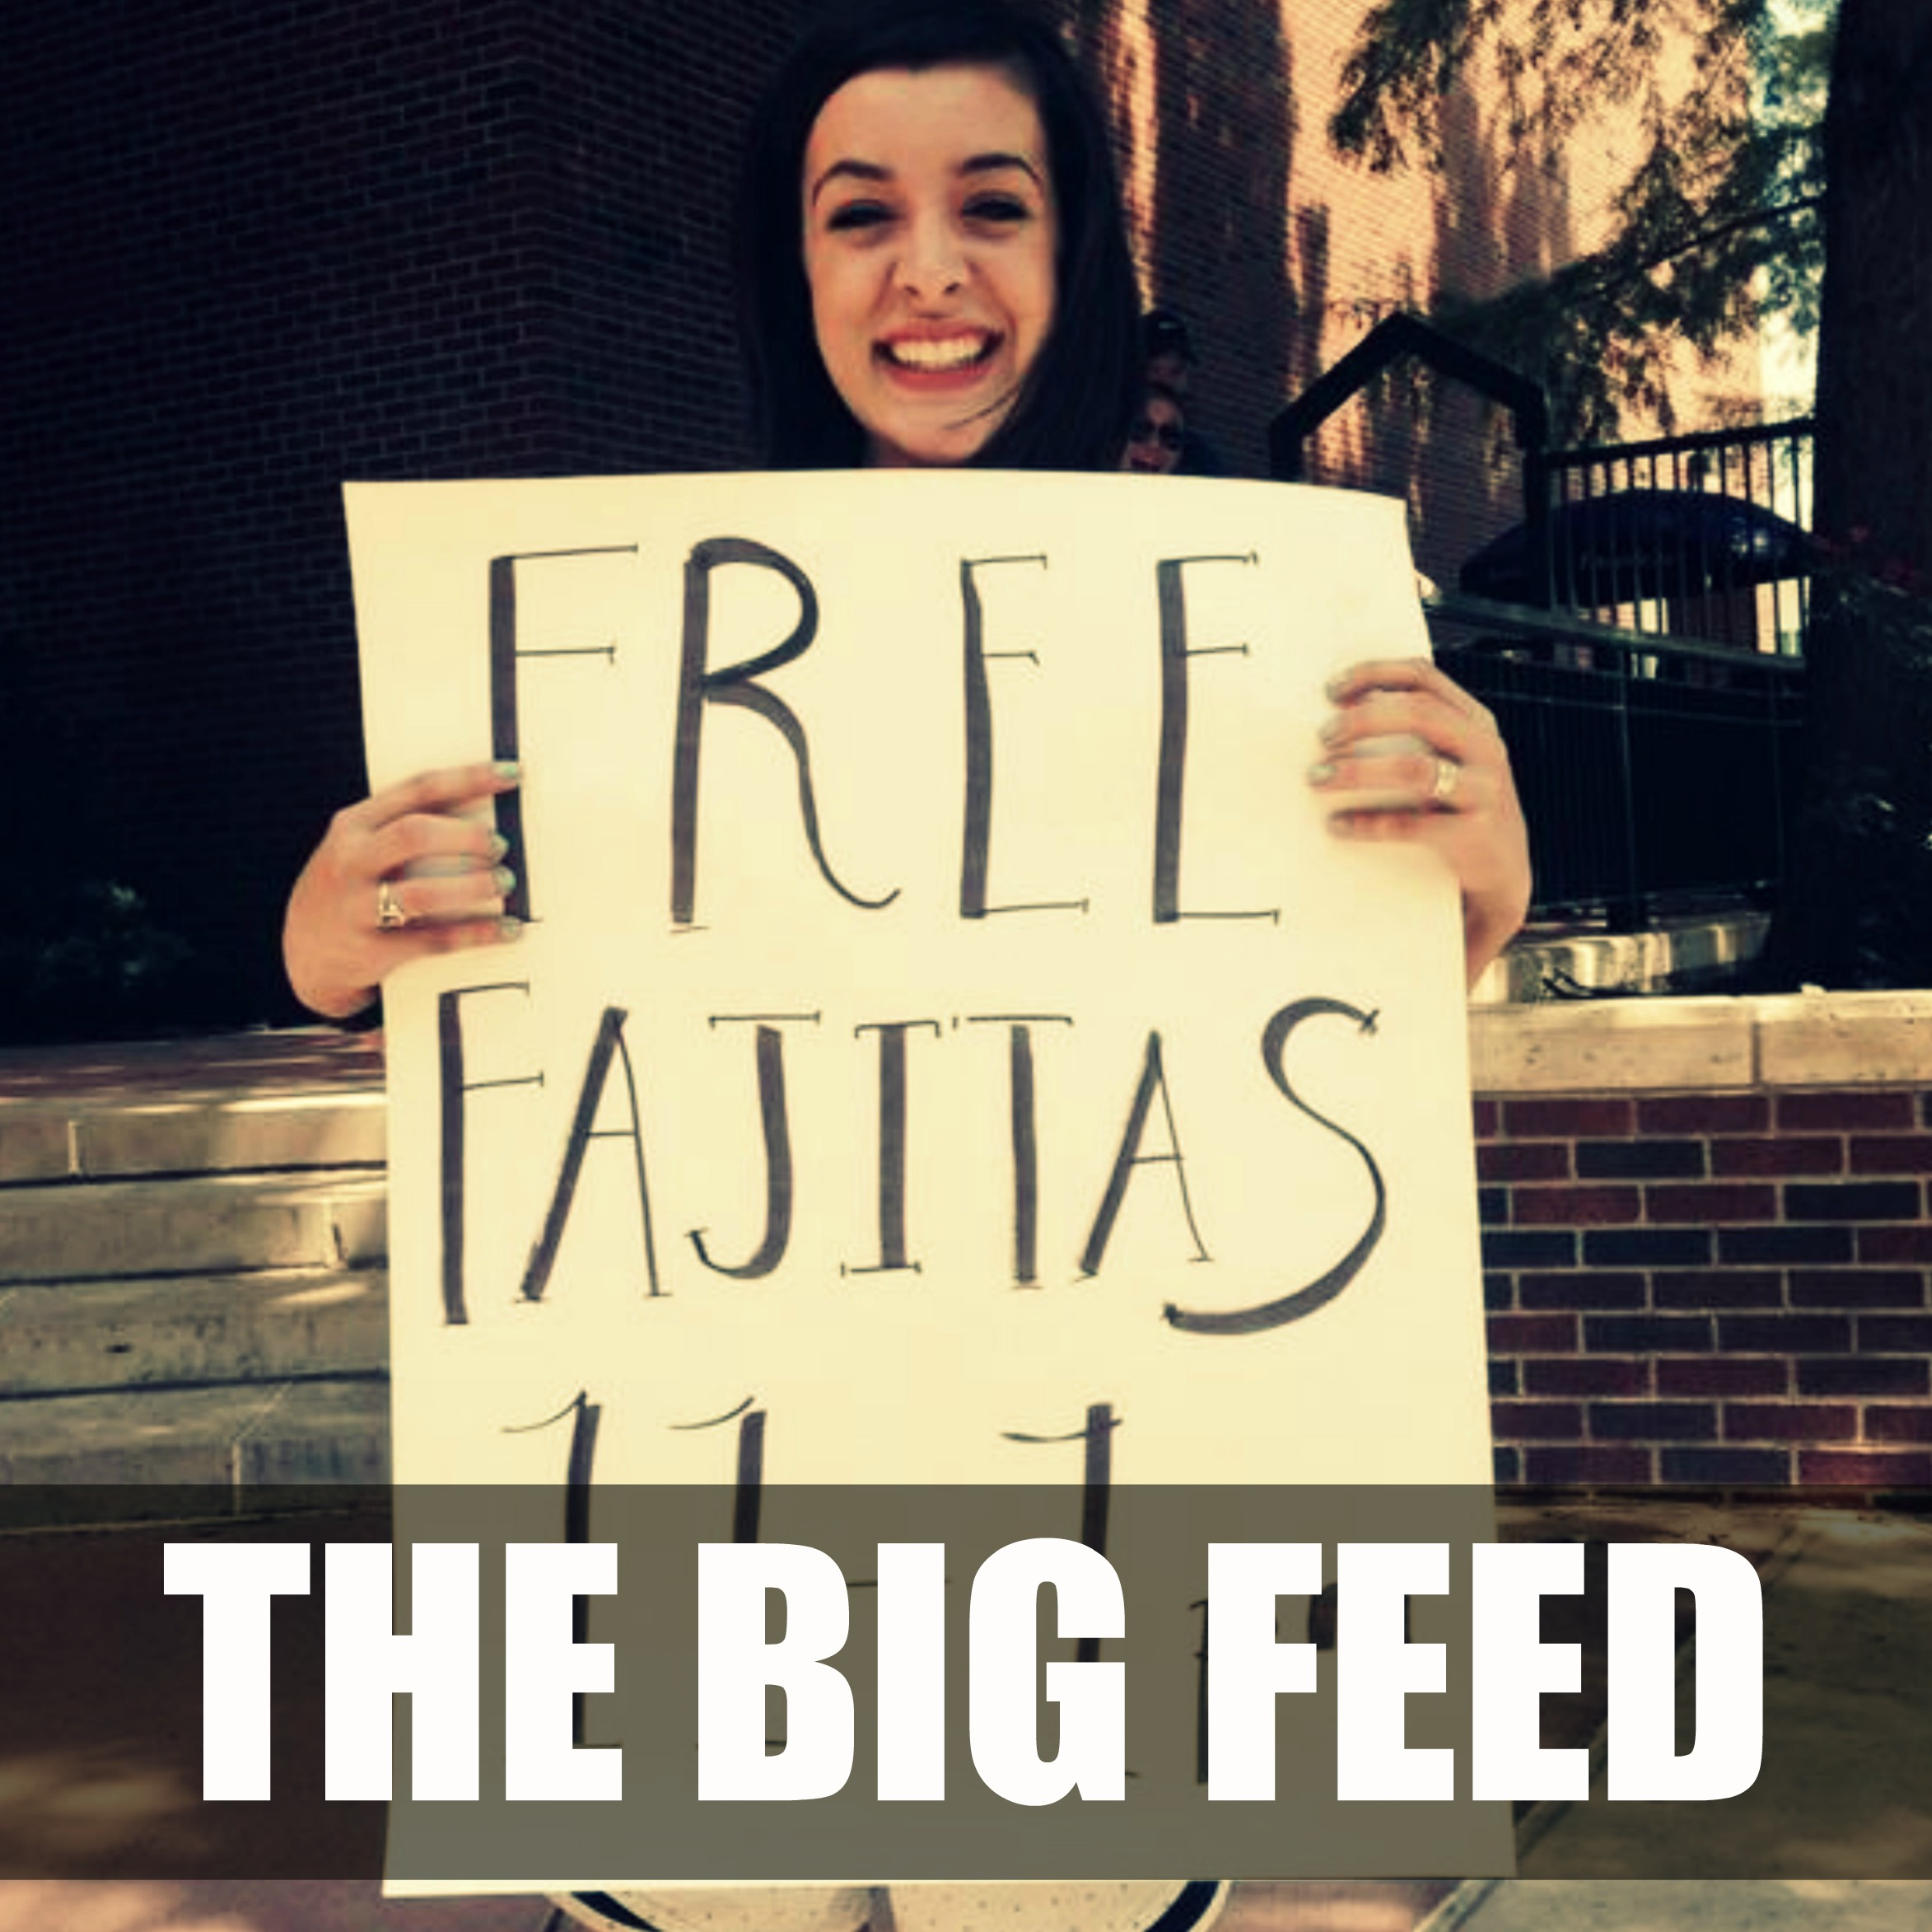 THE BIG FEED   WEDNESDAY FROM 11AM-1PM IN THE BALLROOMS   You do not want to miss this! It's the largest feast on campus! Free Fajitas for the first 2,000 students. Make your way over to the Student Center and then follow your nose and follow the crowd! Enjoy the food and home-made desserts and connect with many of our local churches!